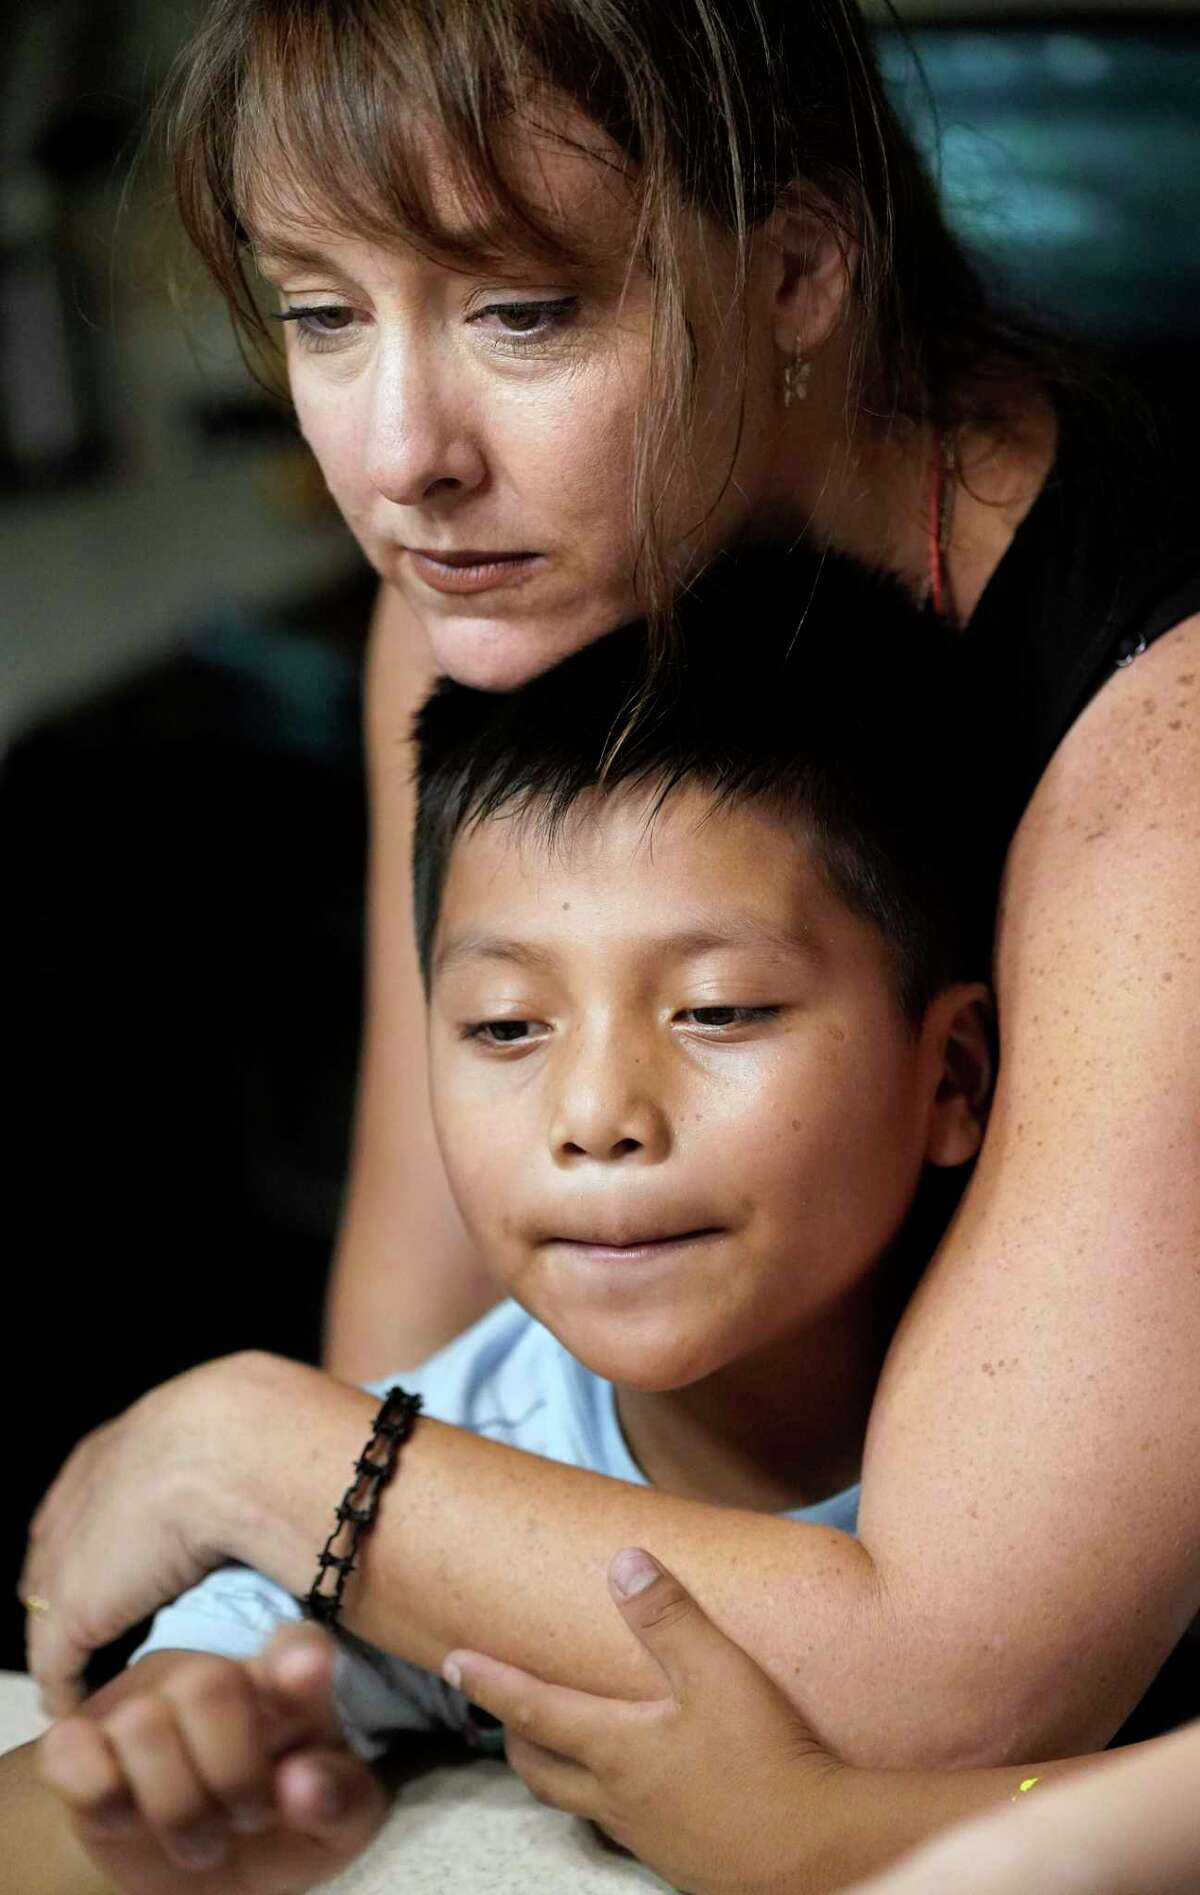 Holly Sewell gives Byron Xol, an immigrant from Guatemala, a hug during his birthday party, June 23, in Buda. Byron was separated from his father, David Xol-Cholom, in May 2018. The government is using loopholes to continue separating immigrant children from their families.